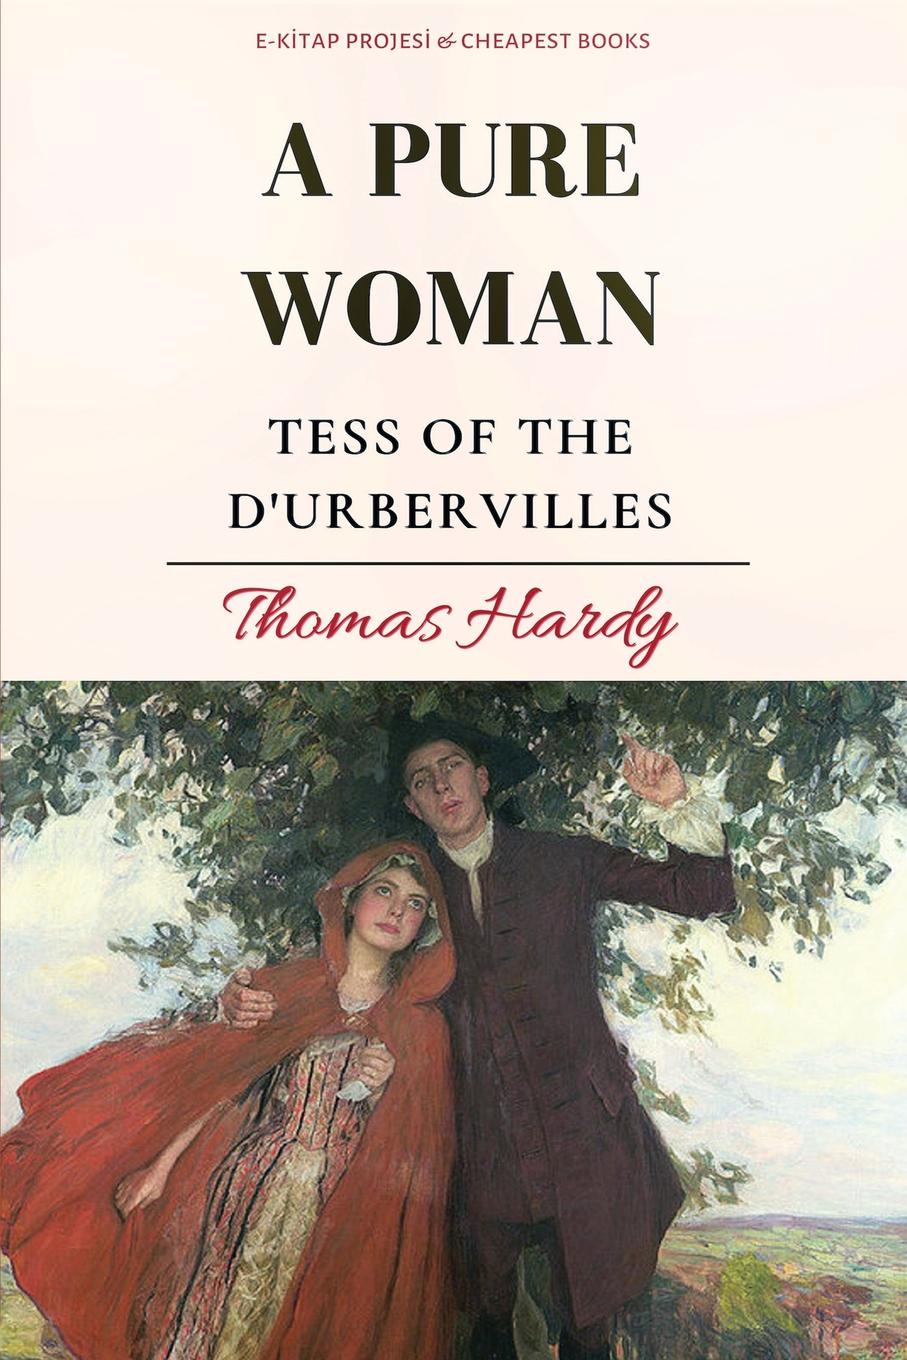 Thomas Hardy A Pure Woman. Tess of the d.Urbervilles